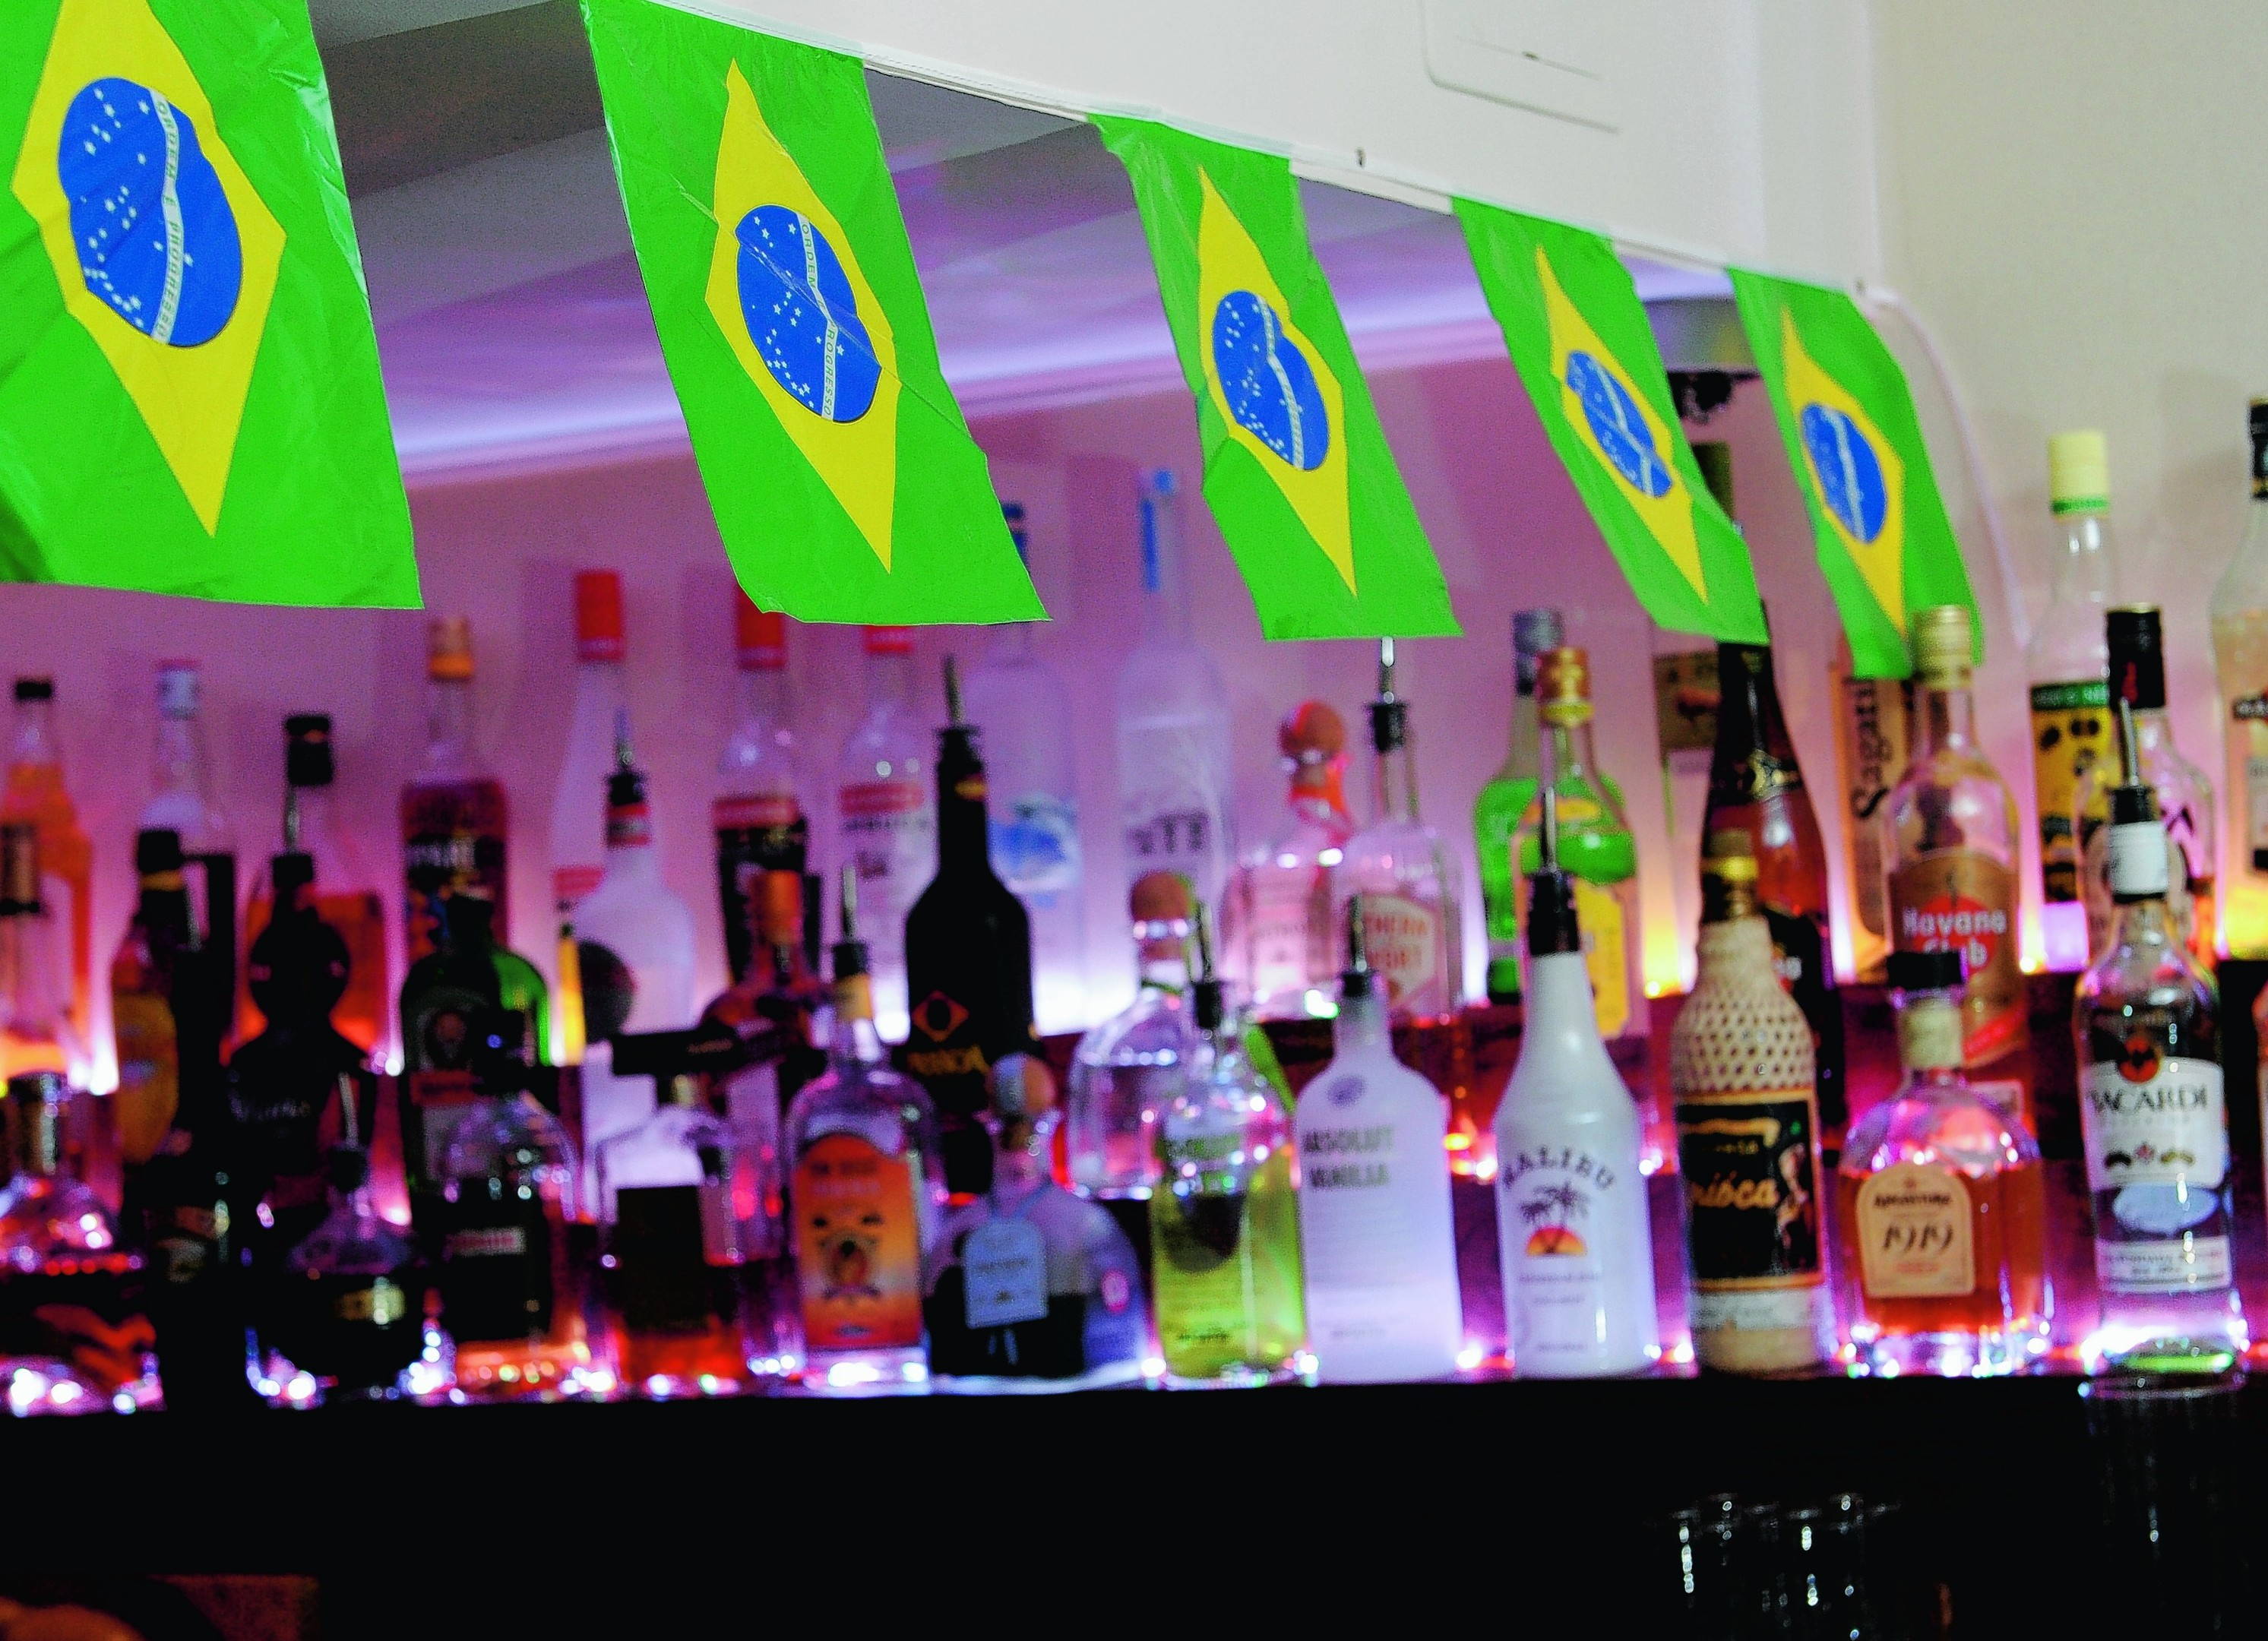 Game on at Hey Brazil! | Press and Journal